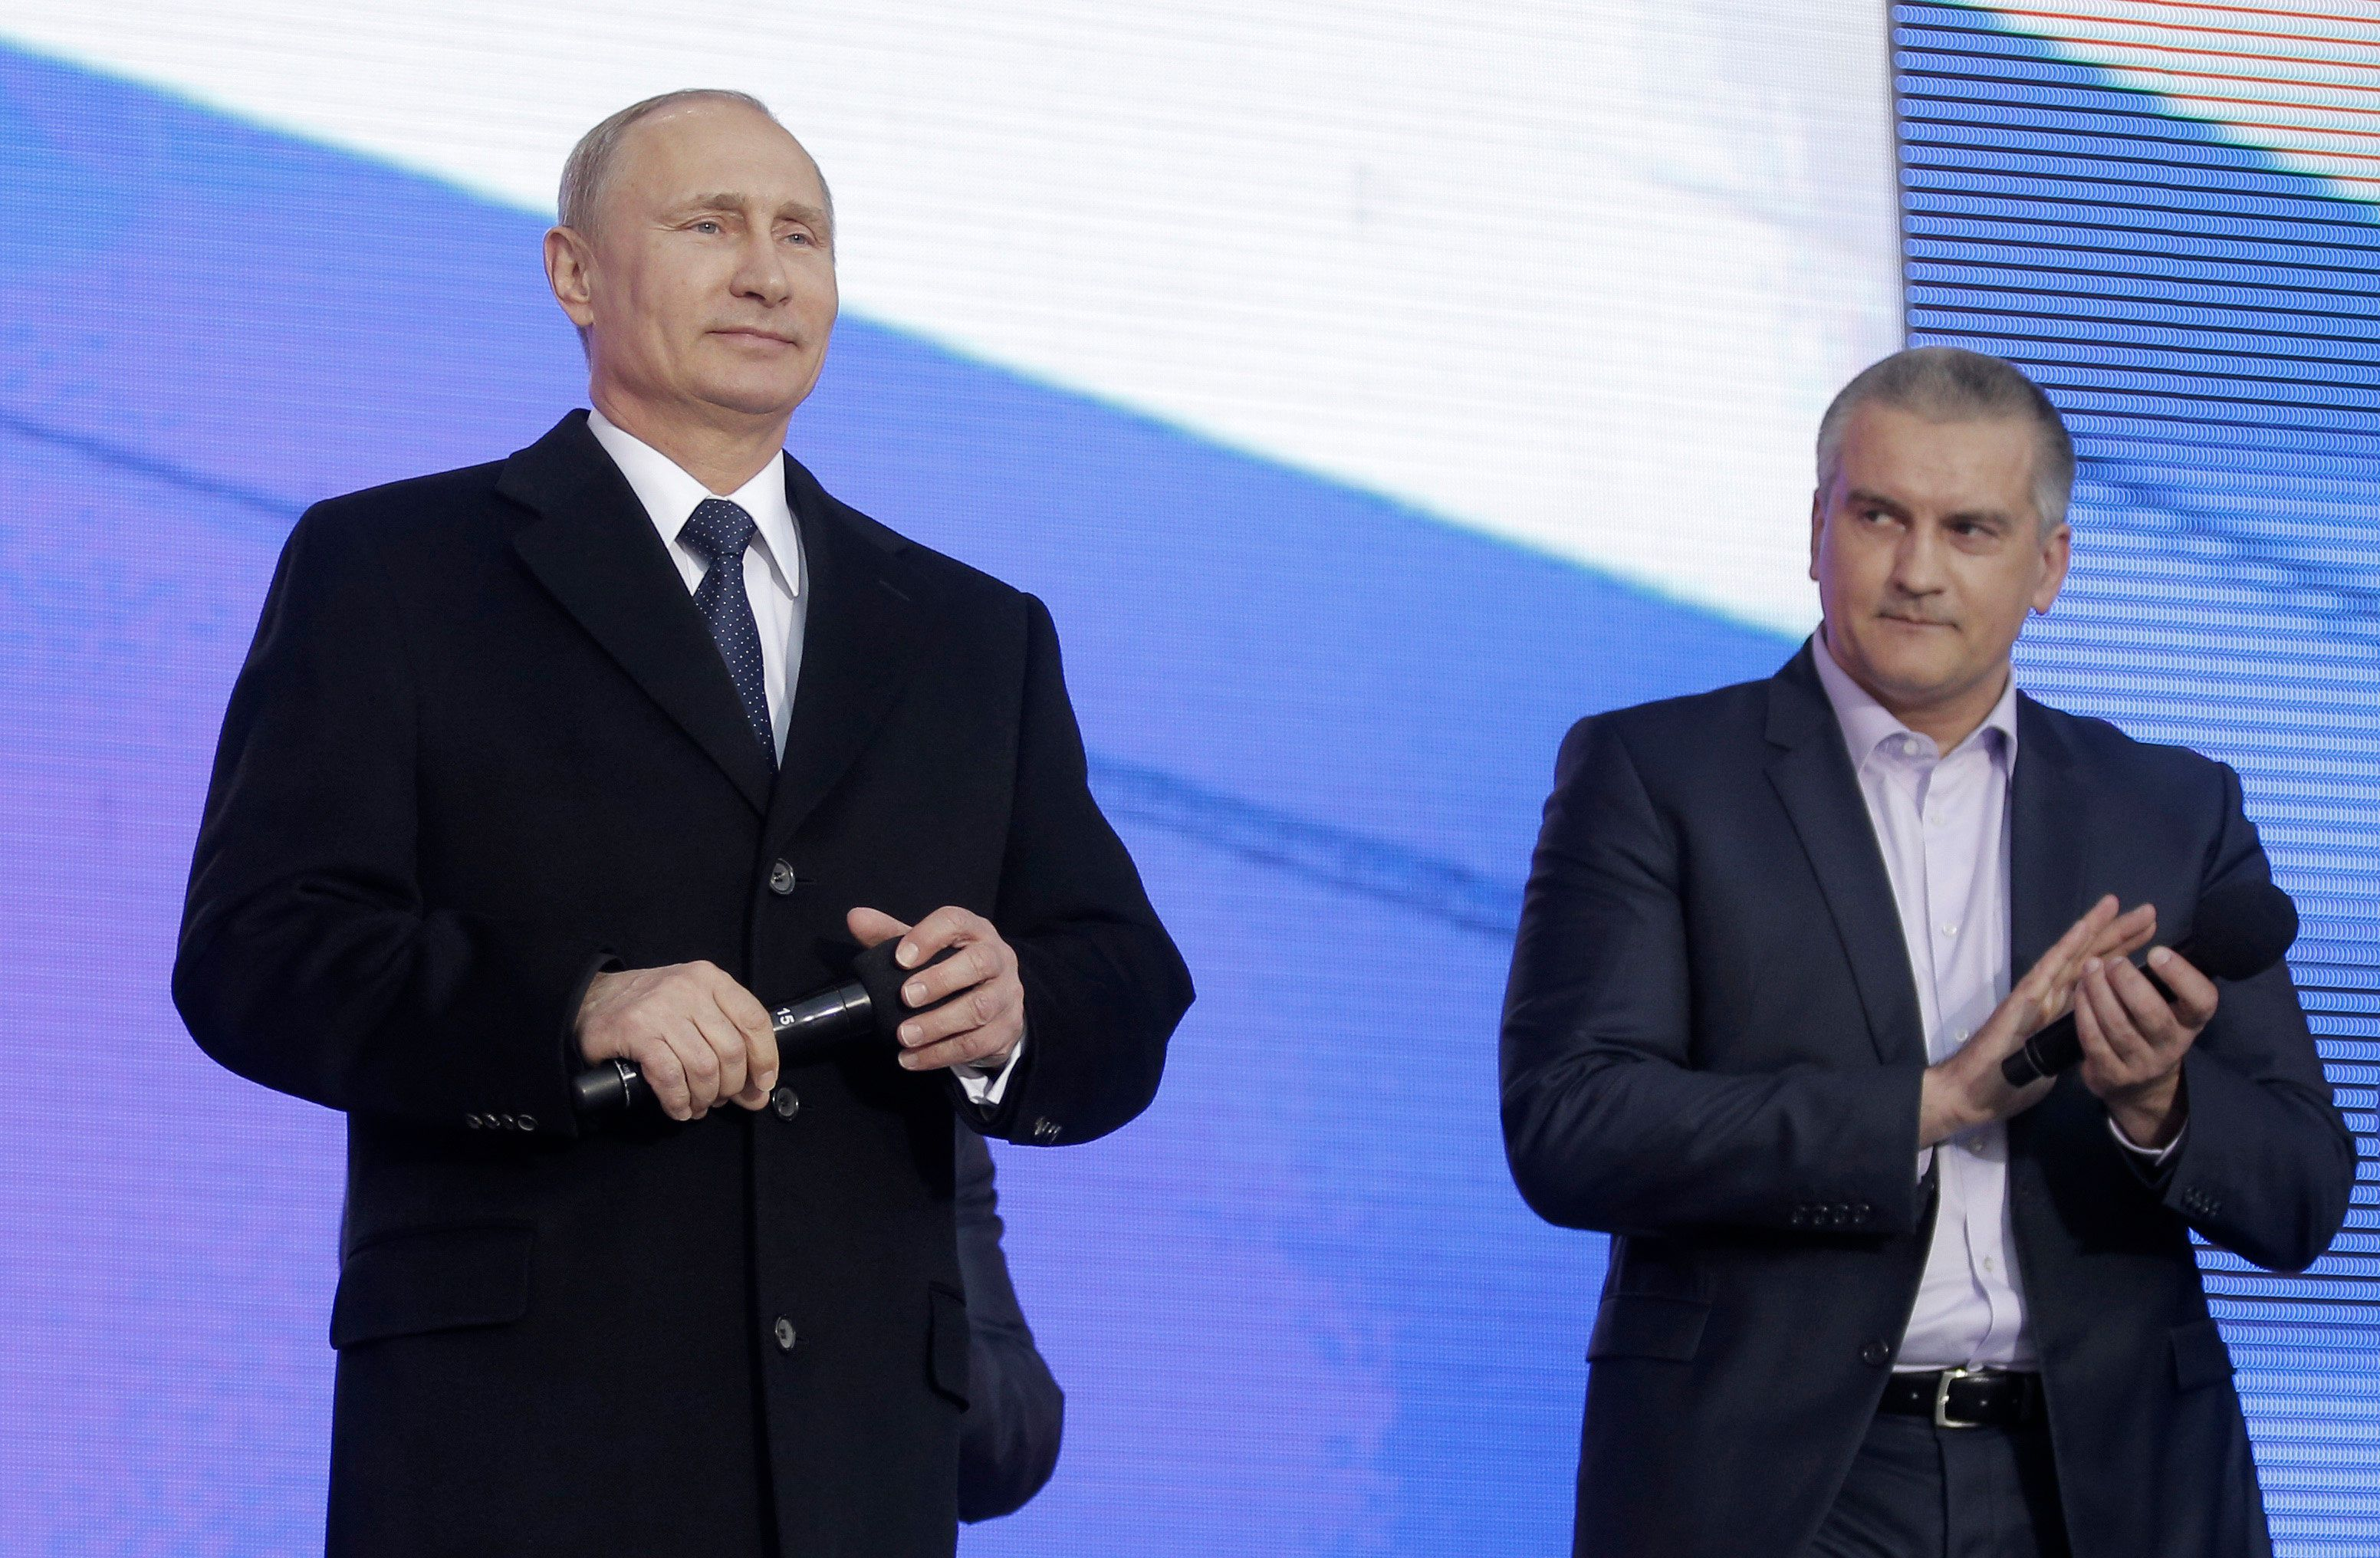 Russian President Vladimir Putin (L) and Crimean Prime Minister Sergei Aksyonov attend a festive concert marking the first anniversary of the Crimean treaty signing in central Moscow, March 18, 2015. Putin said on Wednesday his country, hit by Western economic sanctions over the Ukraine crisis, would overcome all difficulties from outside. REUTERS/Maxim Shipenkov/Pool (RUSSIA - Tags: ANNIVERSARY POLITICS)